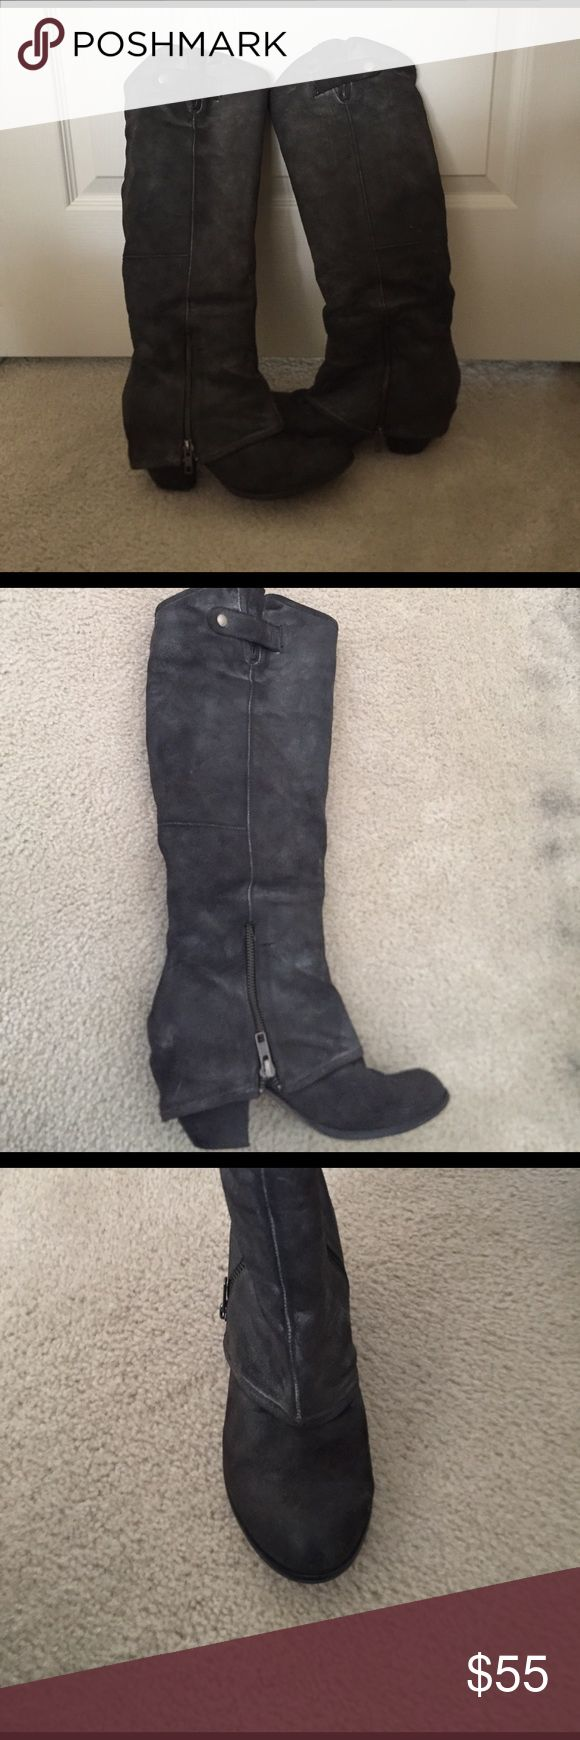 Fergie Distressed Gray Leather Boots Gorgeous gently worn Fergie boots! Let me know if you have any questions! Fergie Shoes Heeled Boots